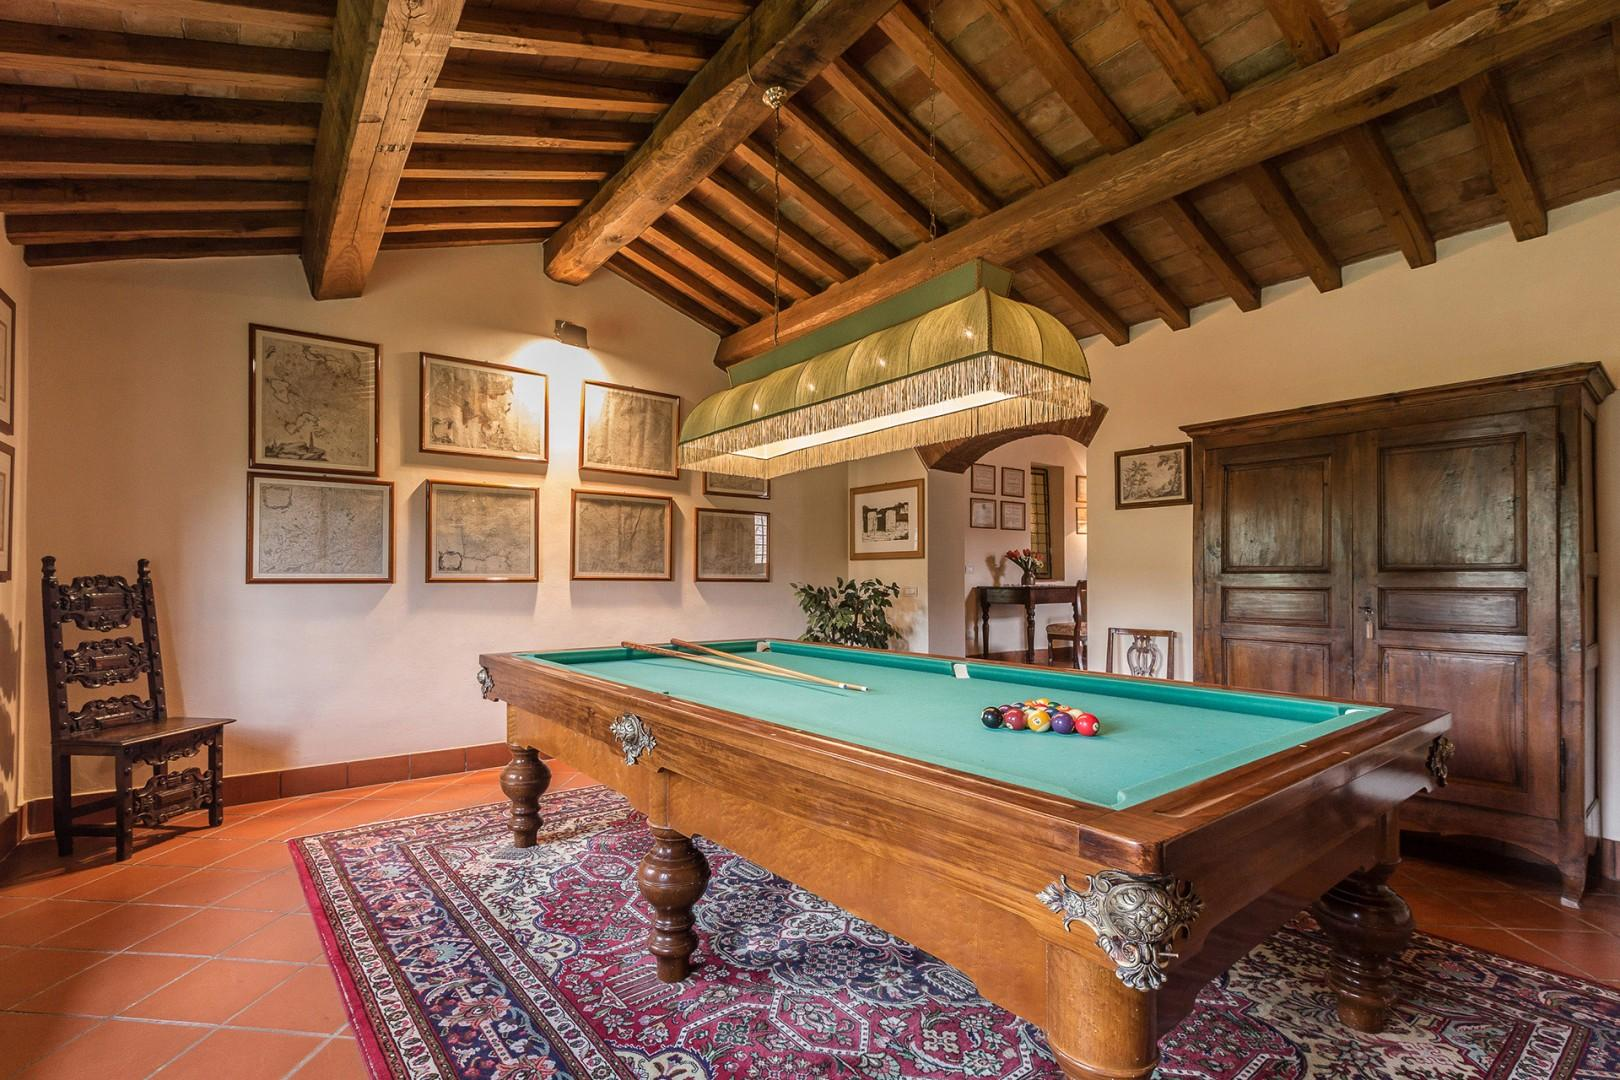 Enjoy a game of billiards! The bookcase has a small library that includes some books in English.